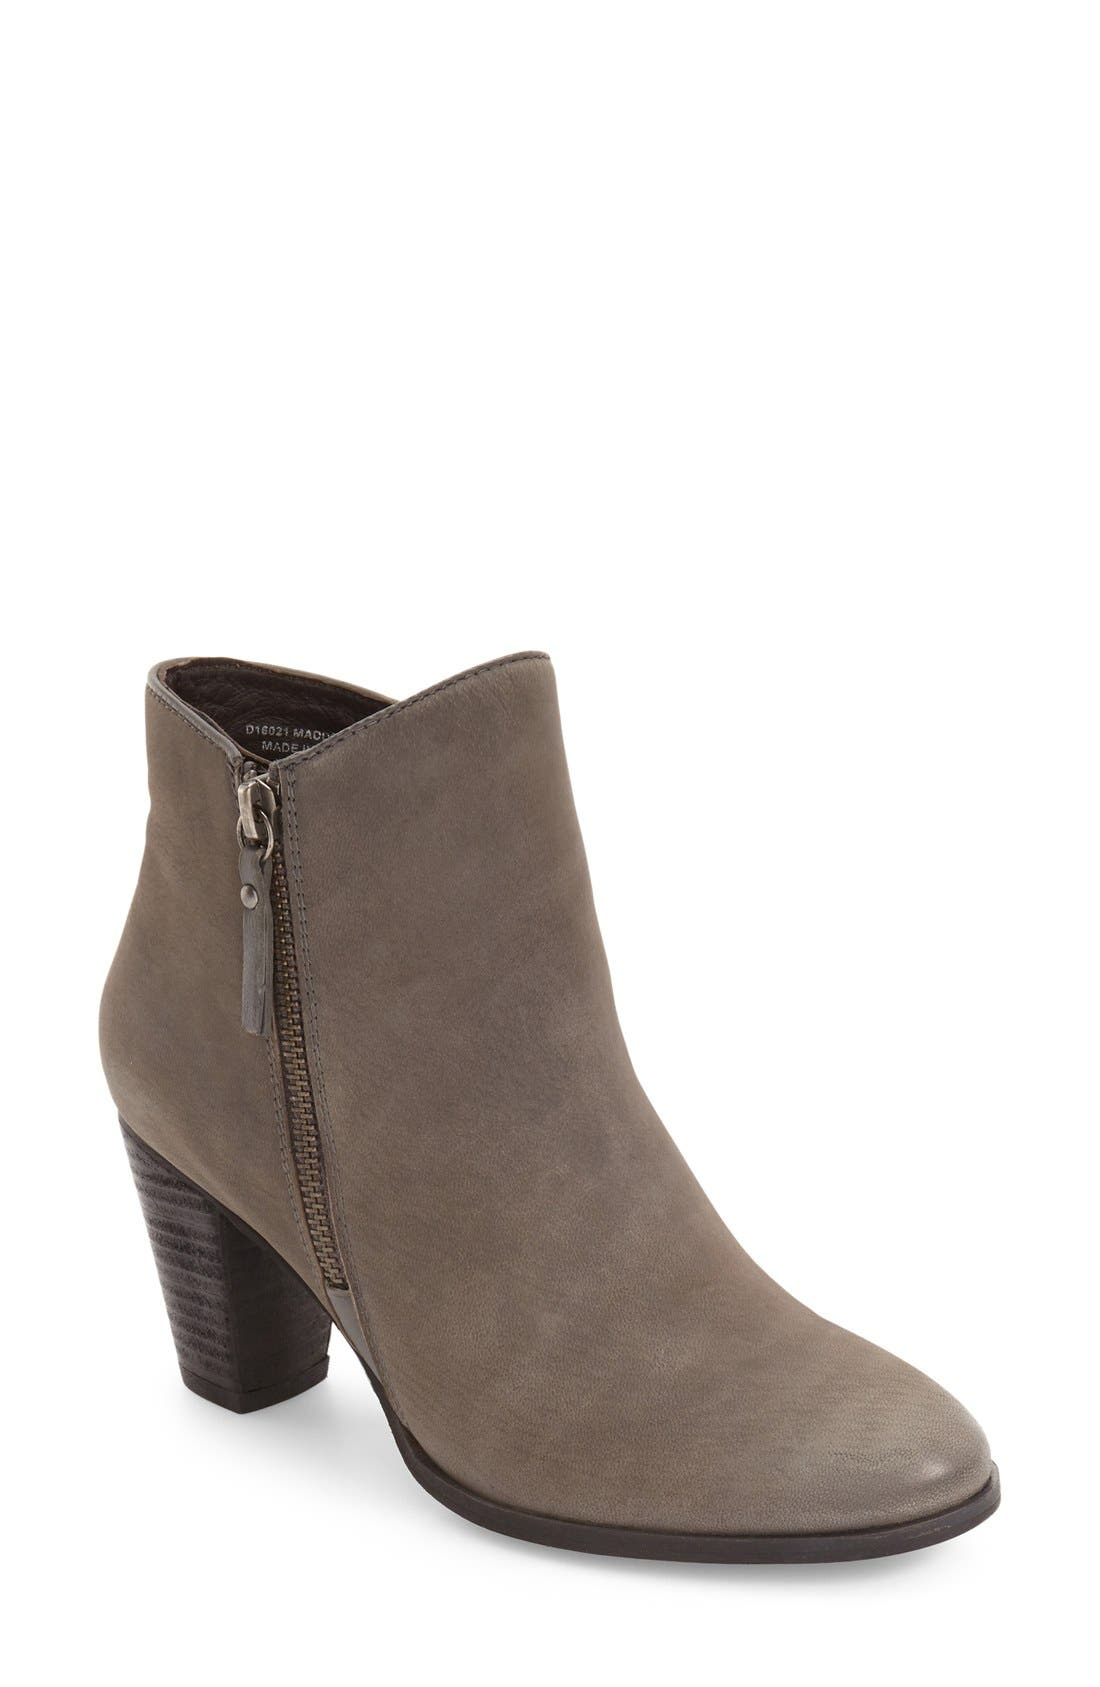 Maddock Block Heel Bootie, Main, color, 030